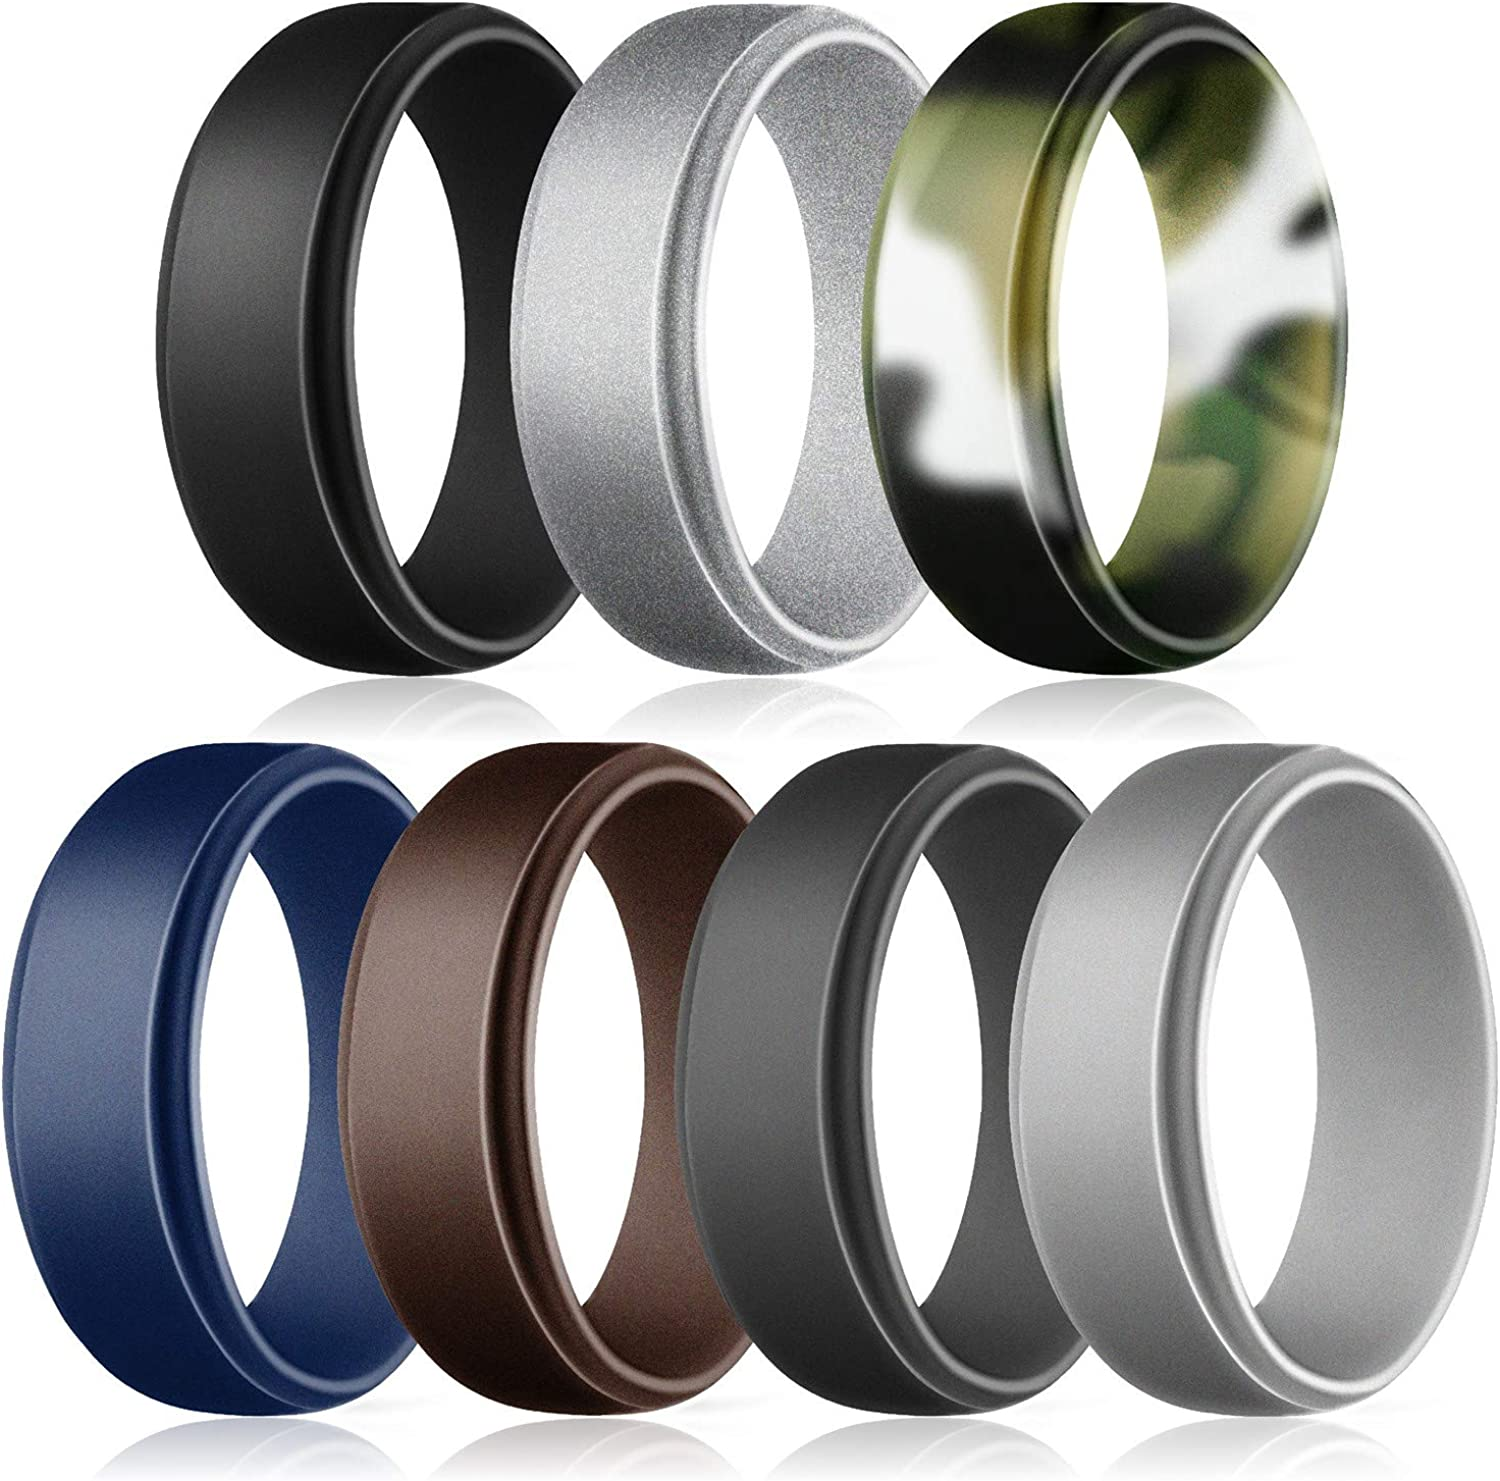 ZIONOR Soft Silicone Wedding Ring for Women Men Durable Rubber Wedding Ring with Suitable Sizes/&Colorful Fashion Design Breathable Rubber Wedding Bands Keep Comfortable at Work Sport